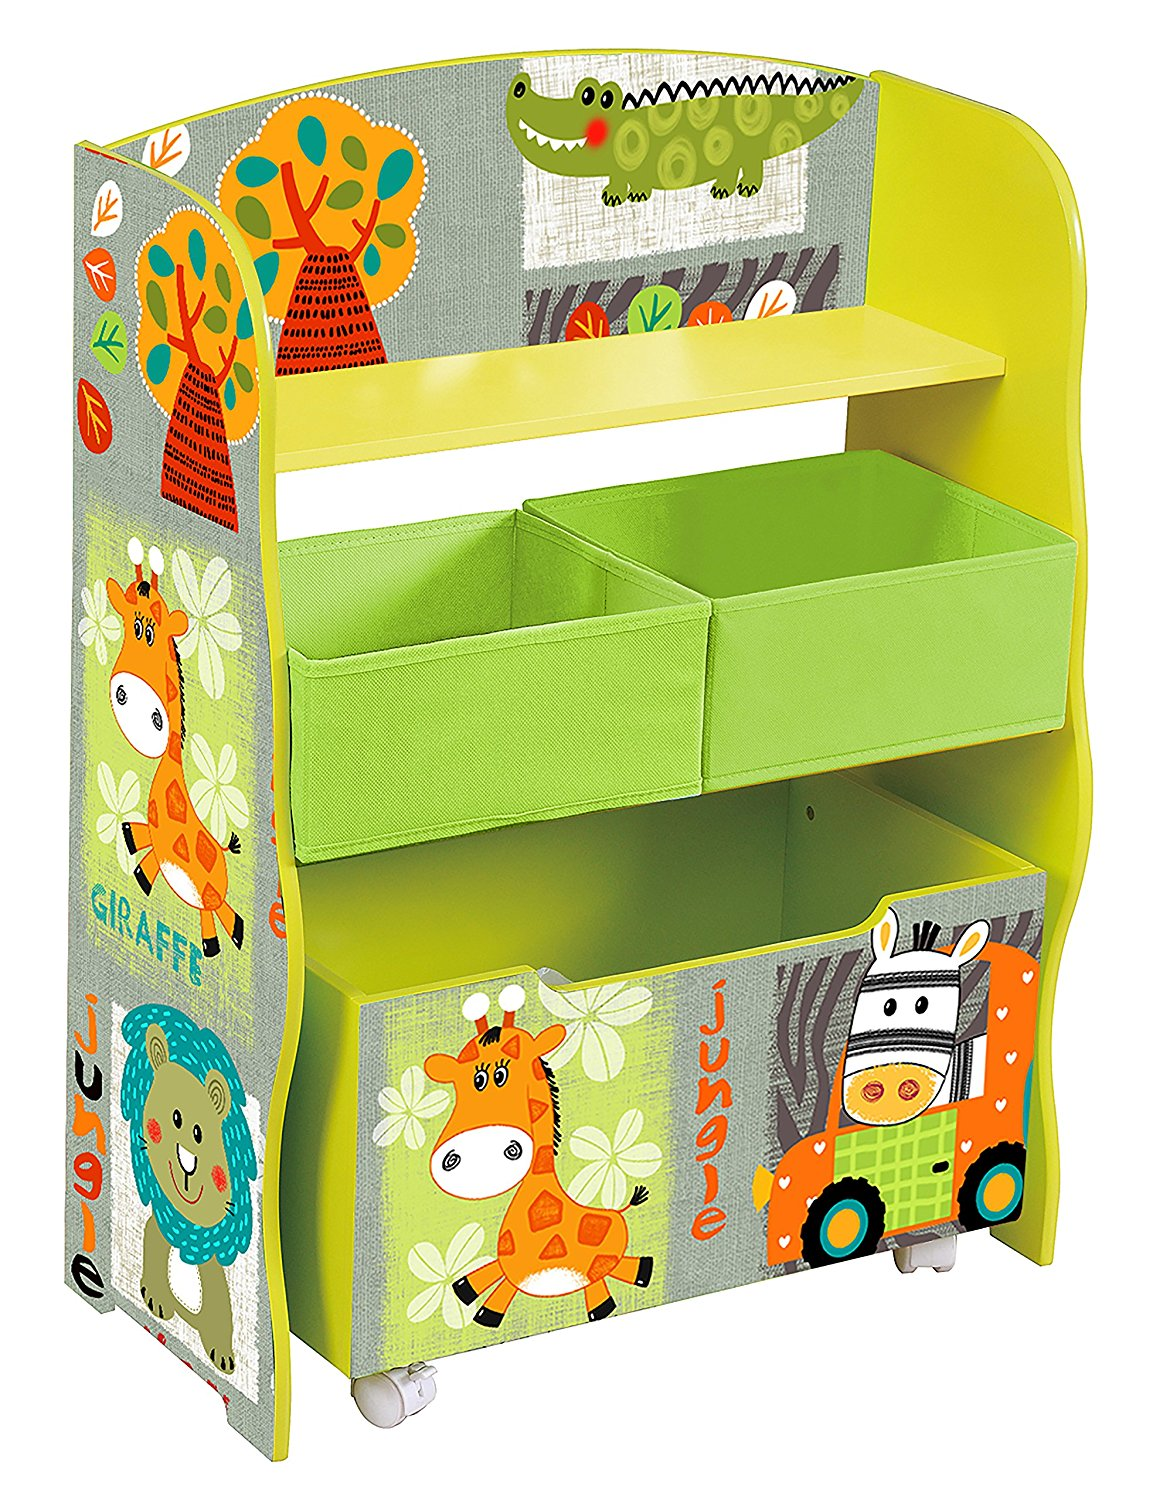 details about childrens storage unit toy box bookshelf wooden jungle safari